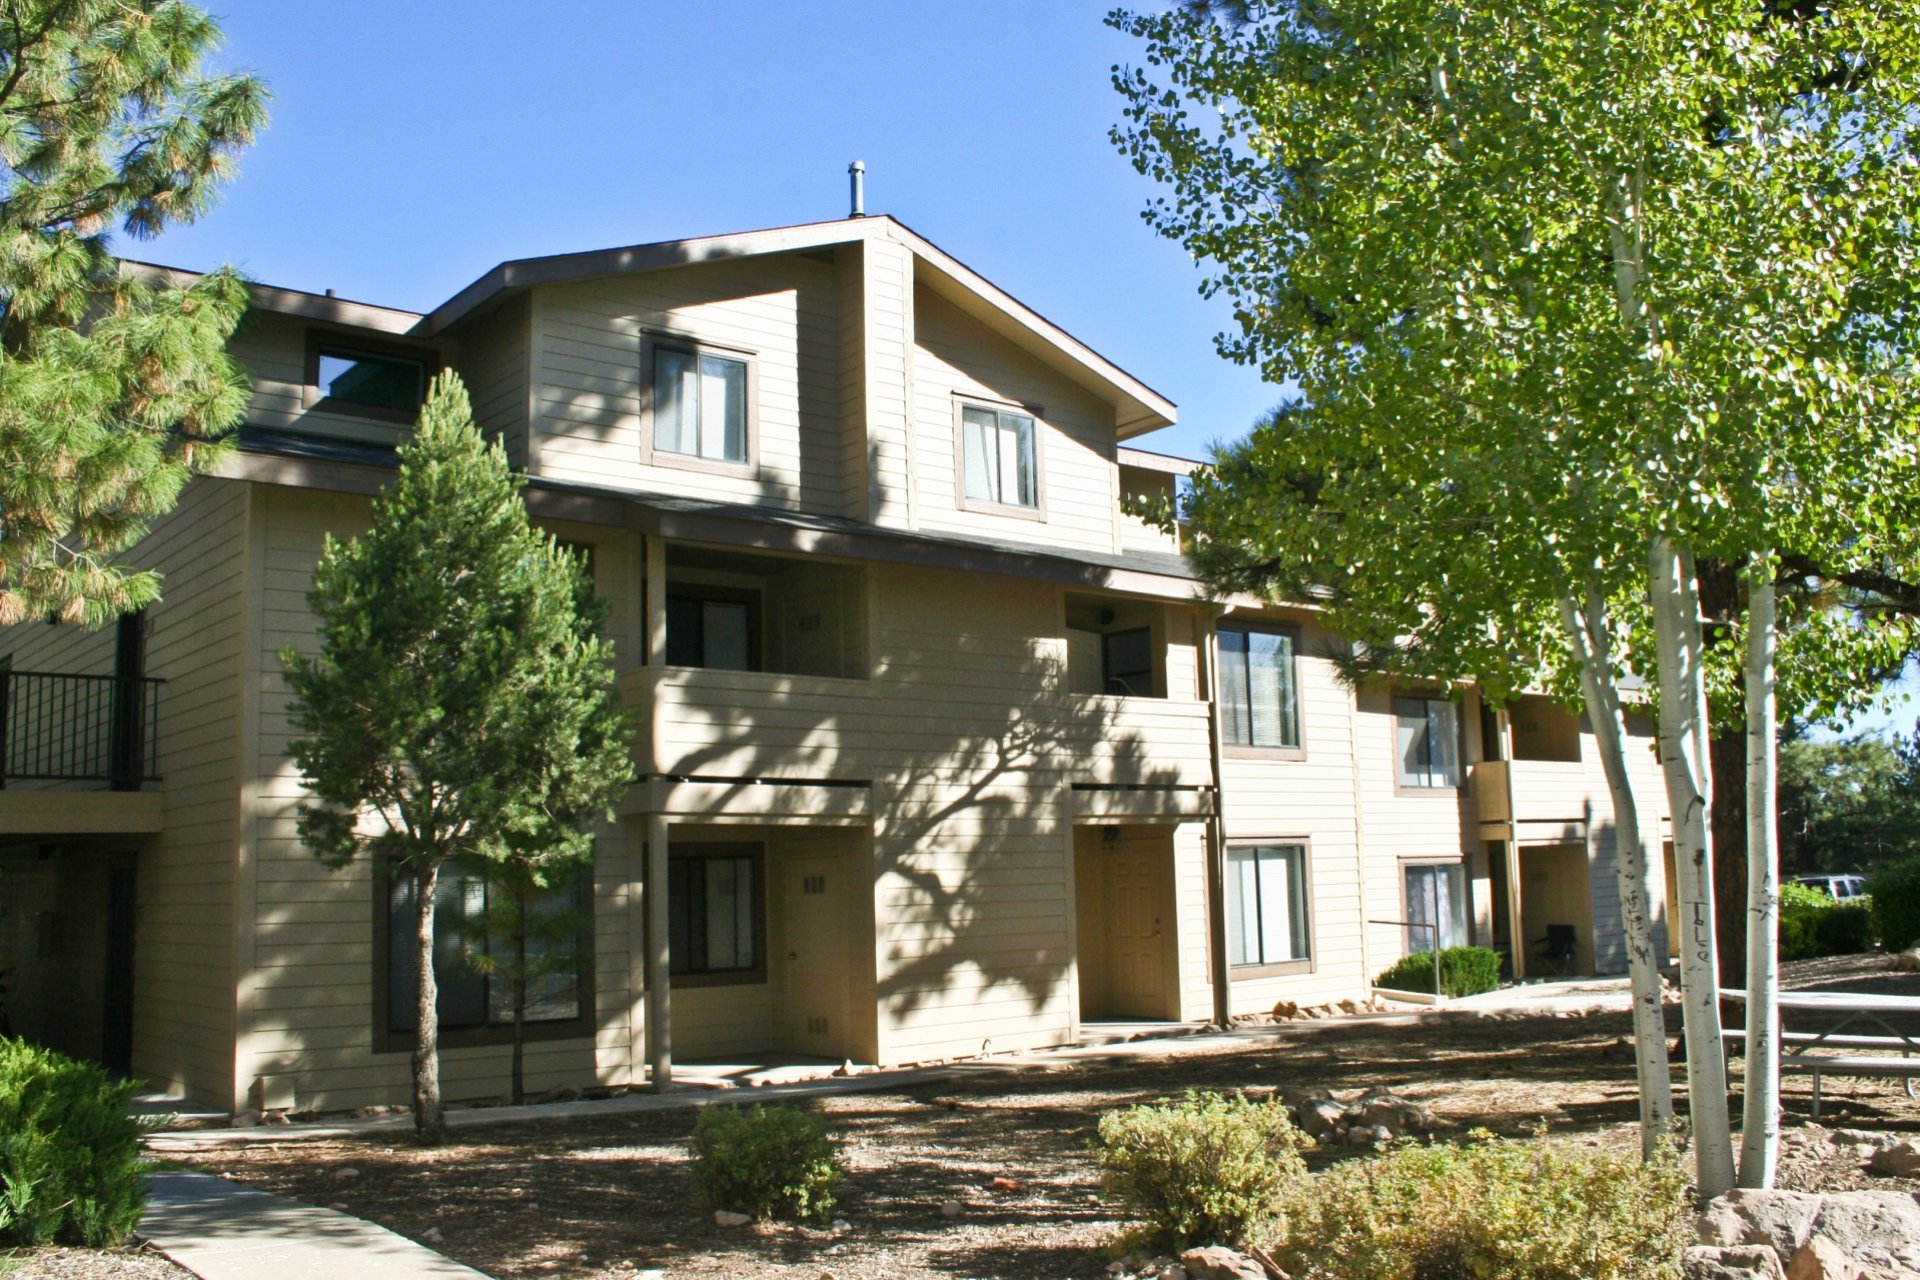 University West Apartments Flagstaff, AZ exterior and landscaping